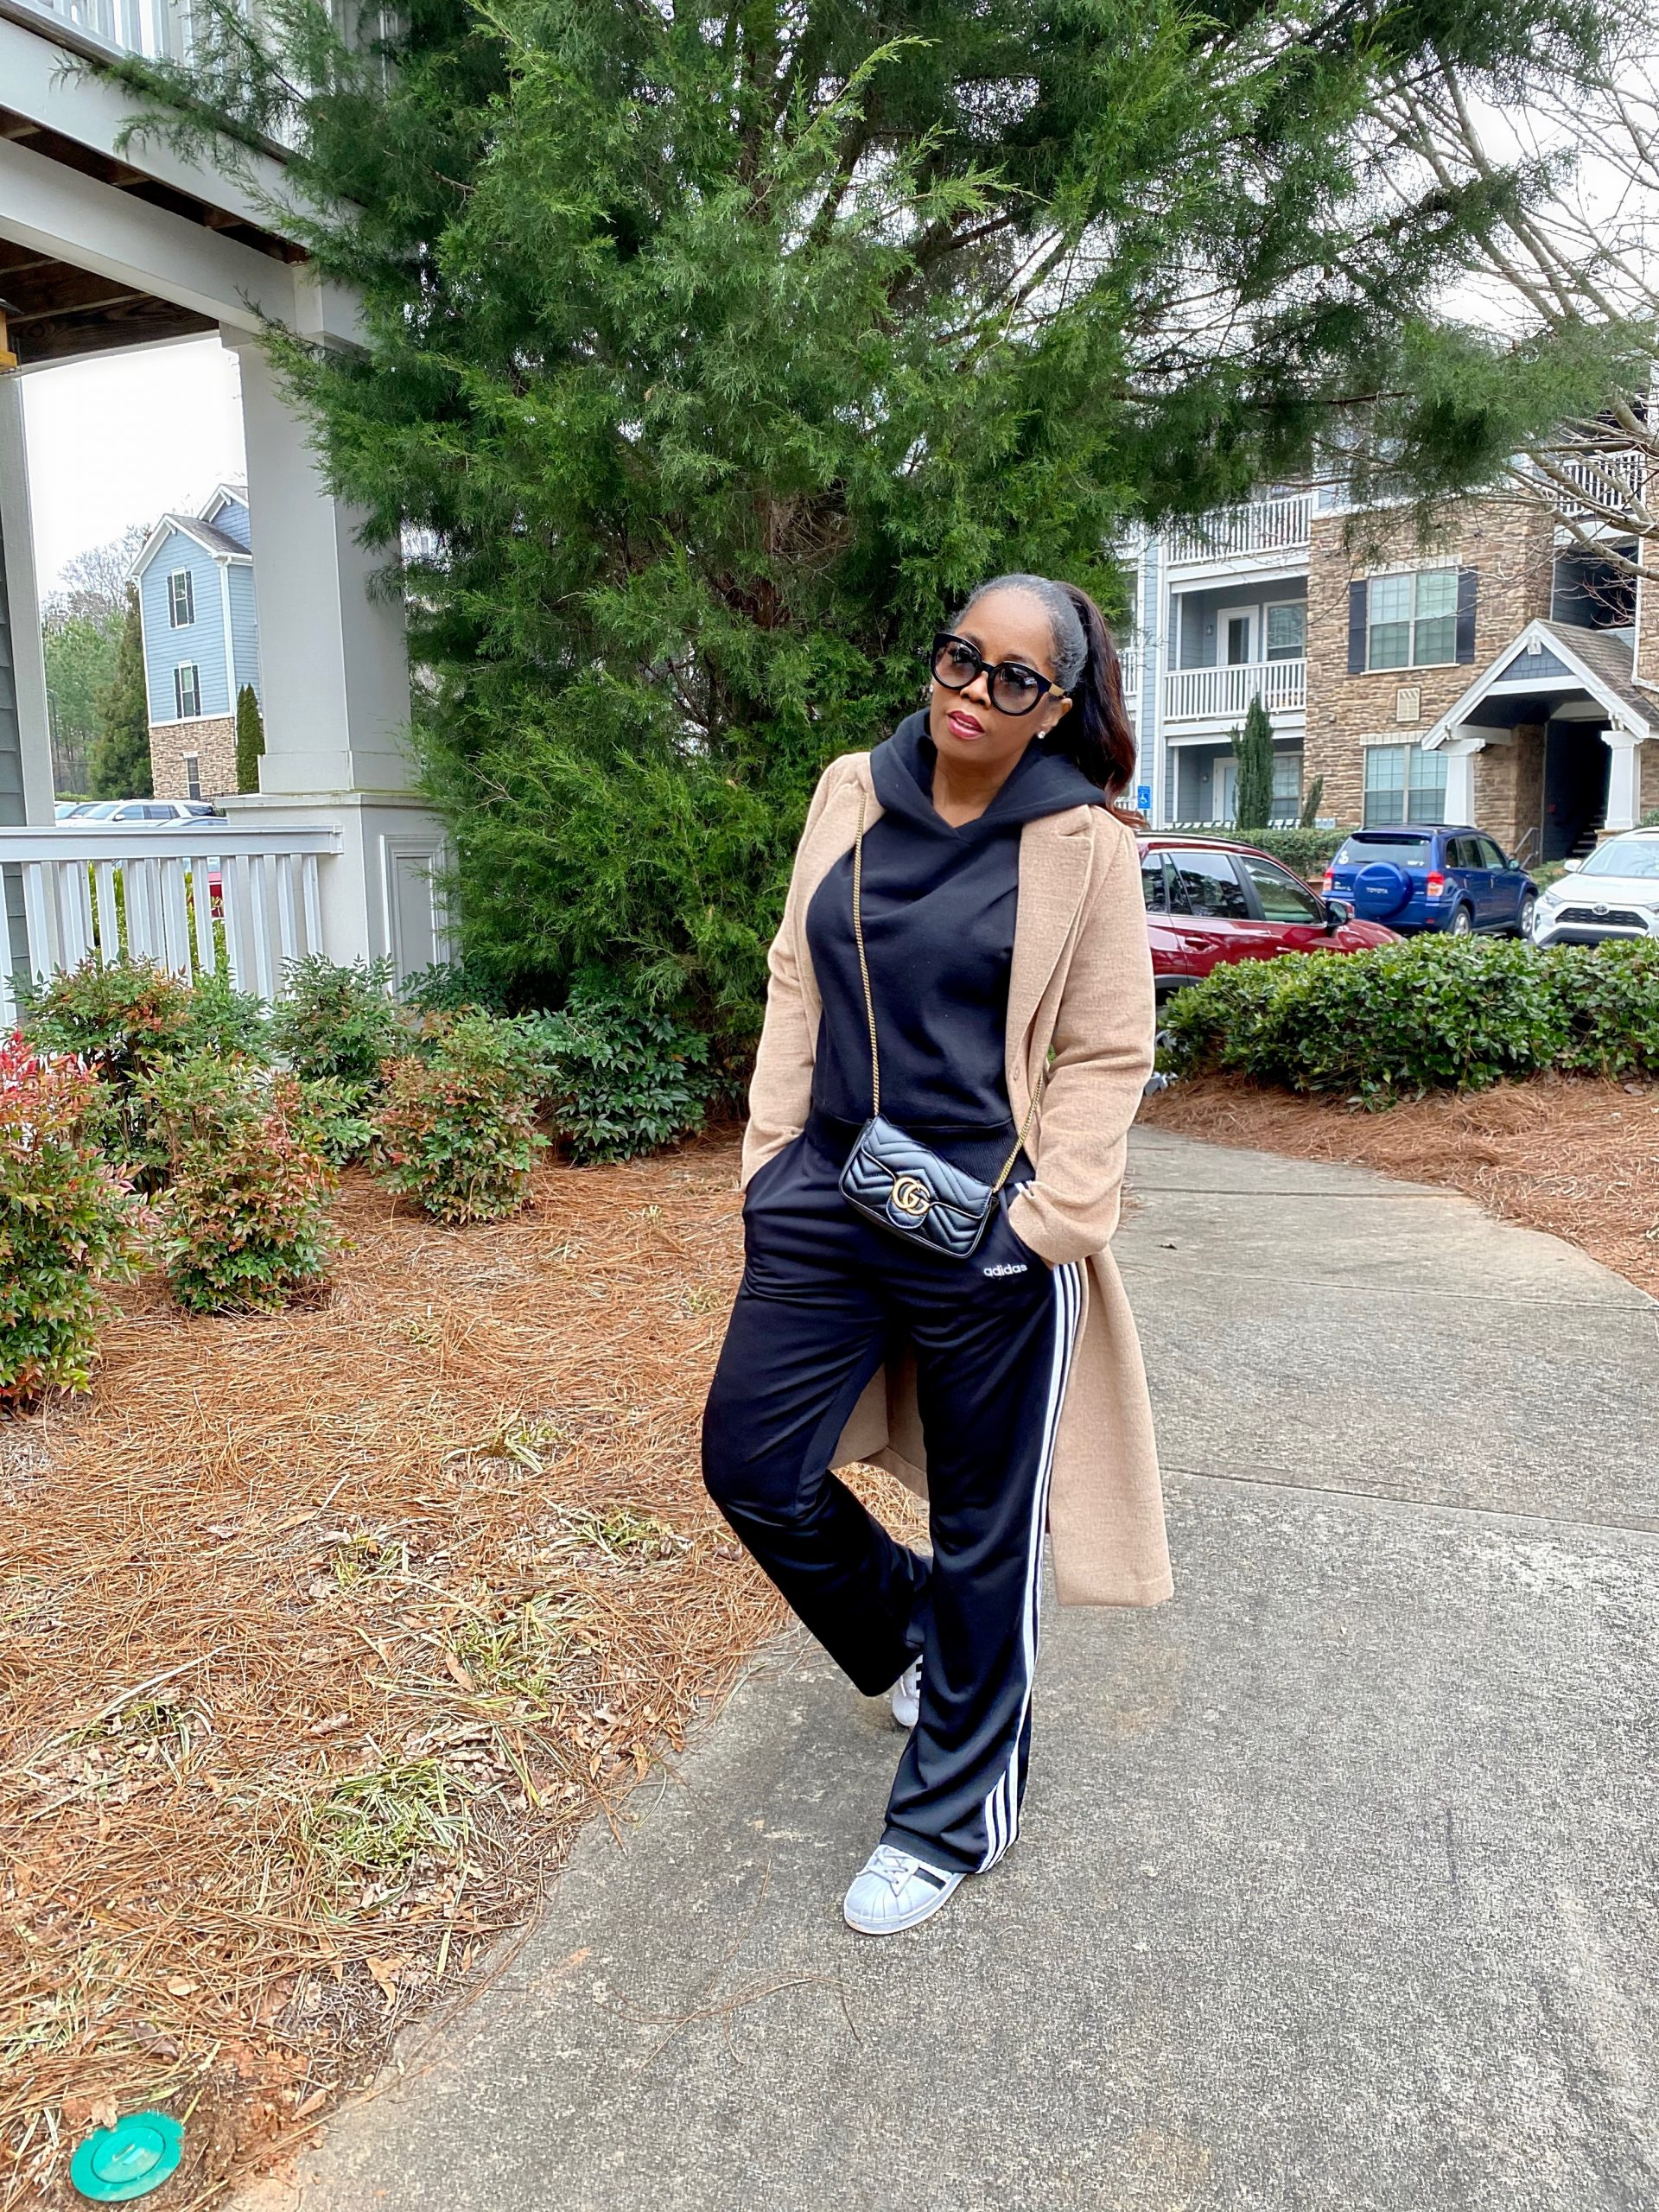 My Style: Adidas Classic Track Pants & Hoodie